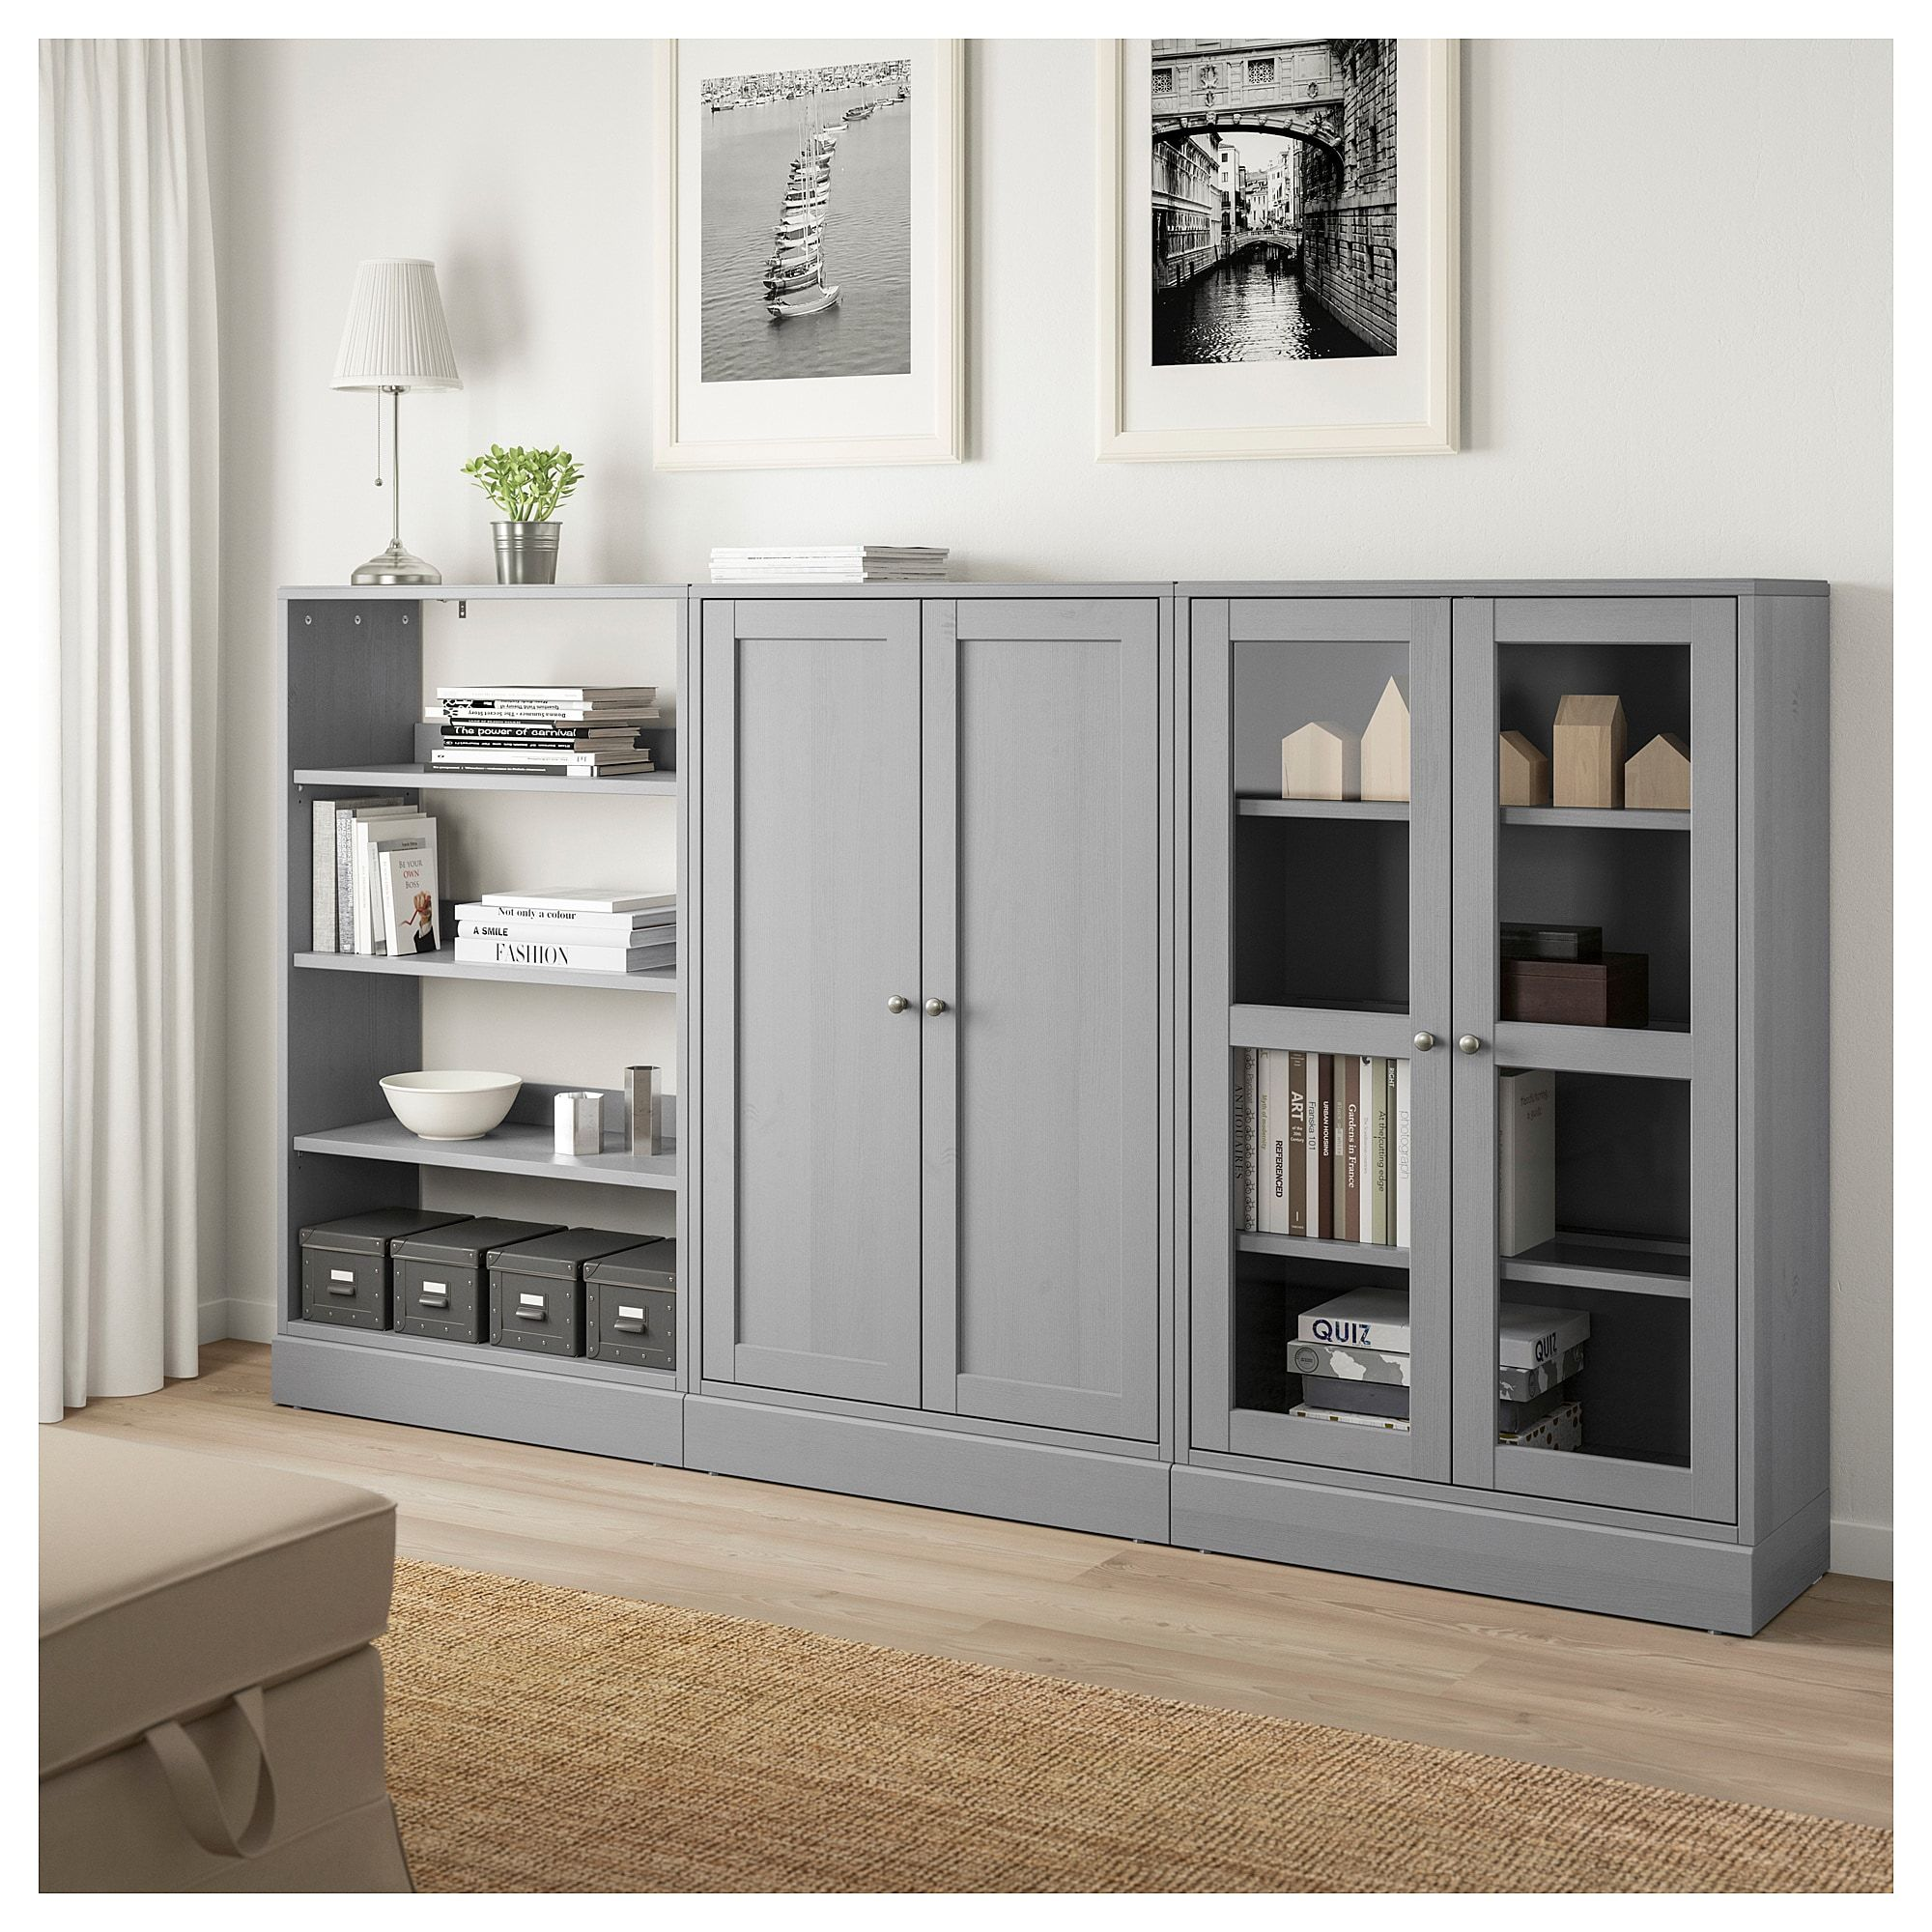 HAVSTA Storage Combination W/glass Doors Gray